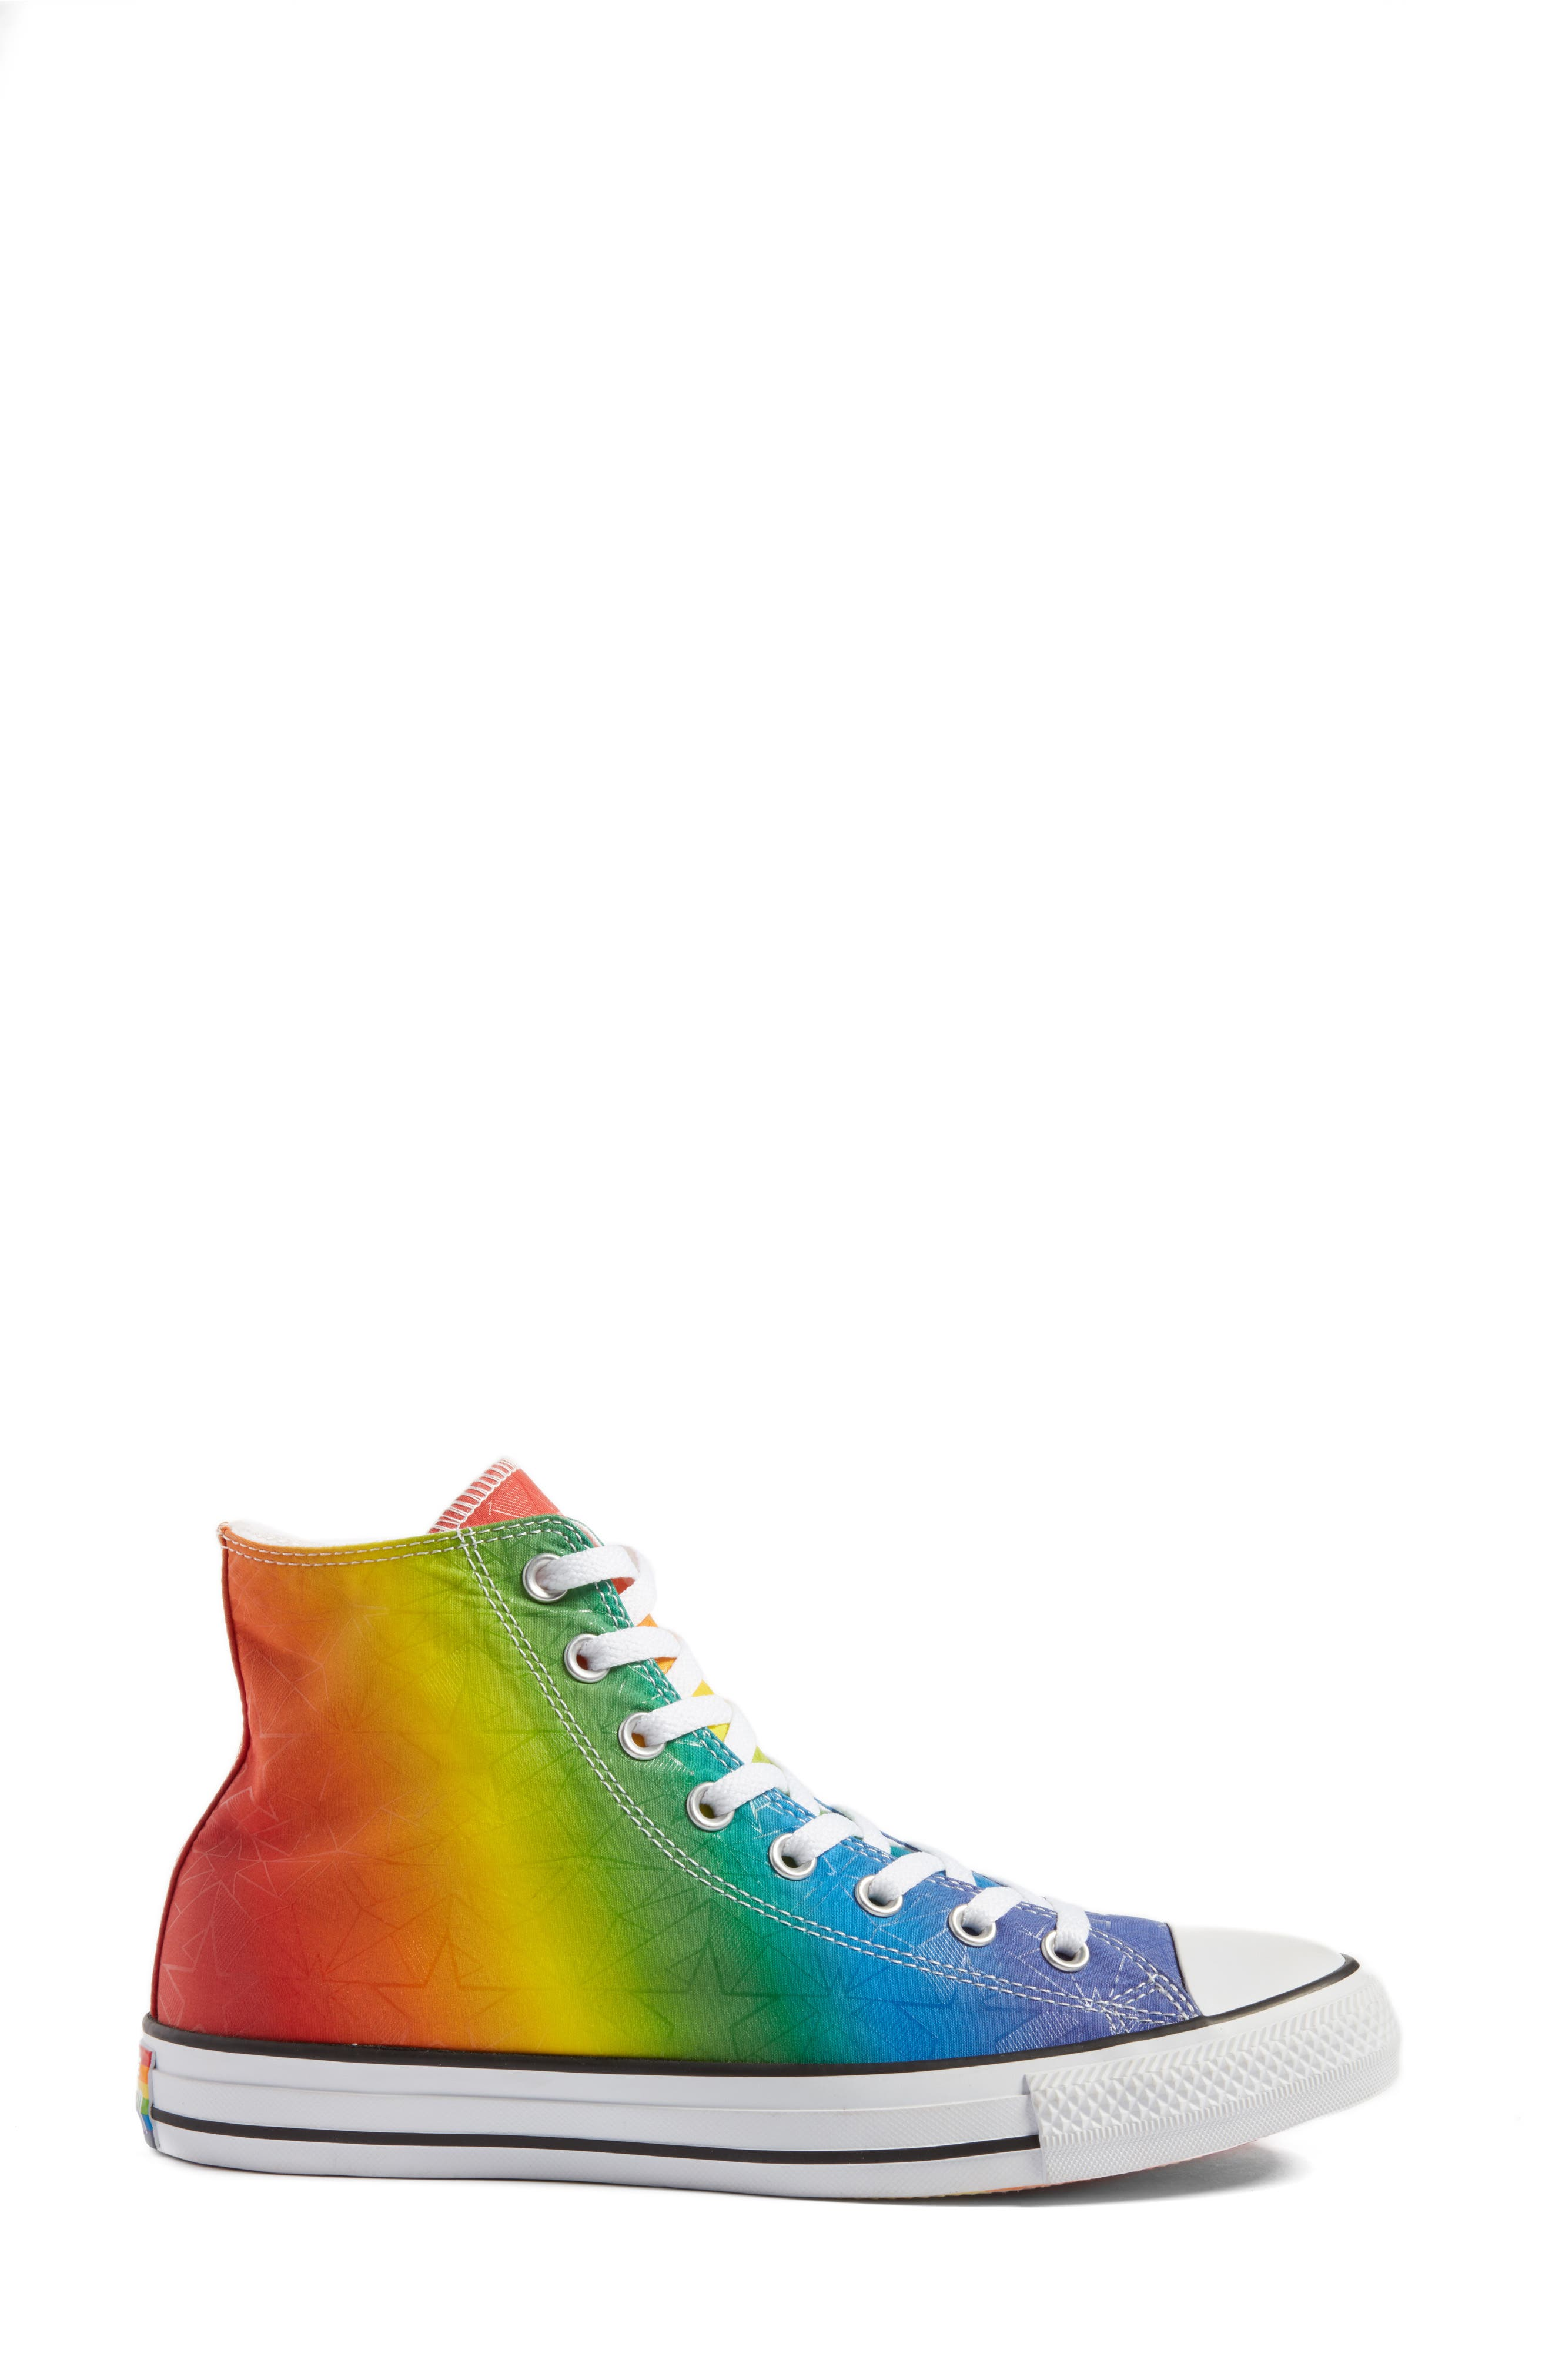 Chuck Taylor<sup>®</sup> All Star<sup>®</sup> Pride High Top Sneaker,                             Alternate thumbnail 3, color,